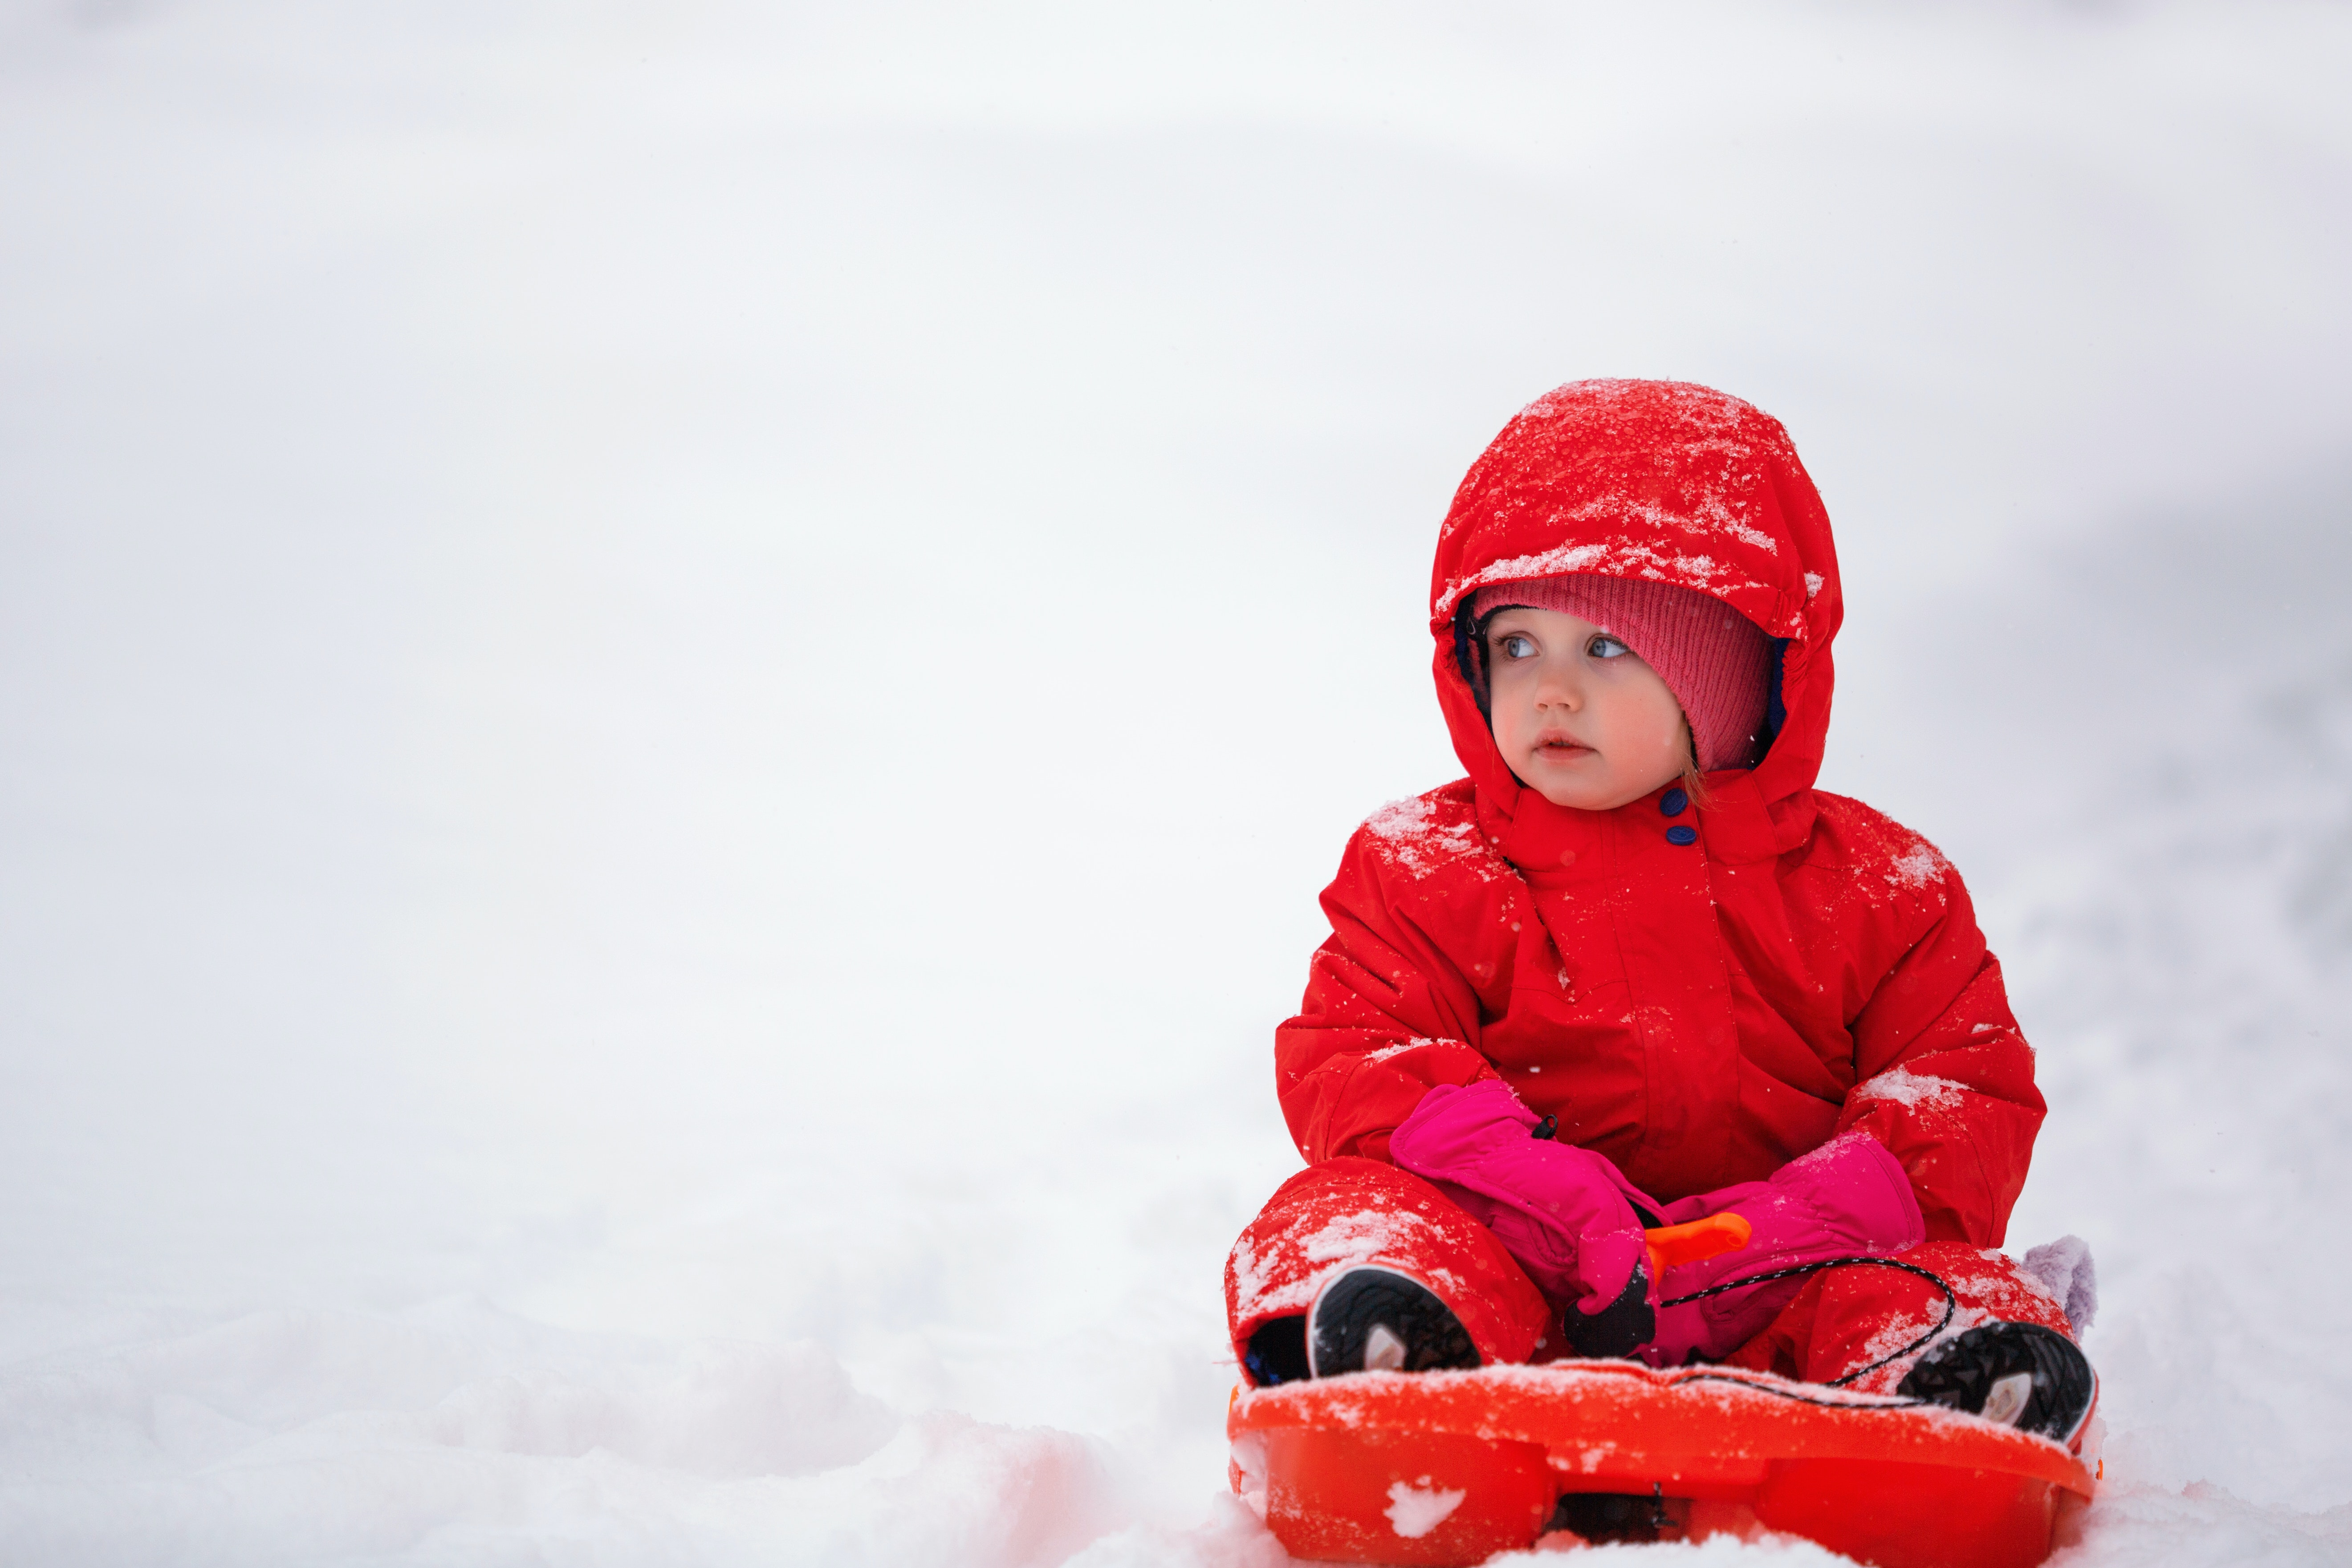 Cheap winter jackets for children, that is, we buy winter clothes for children